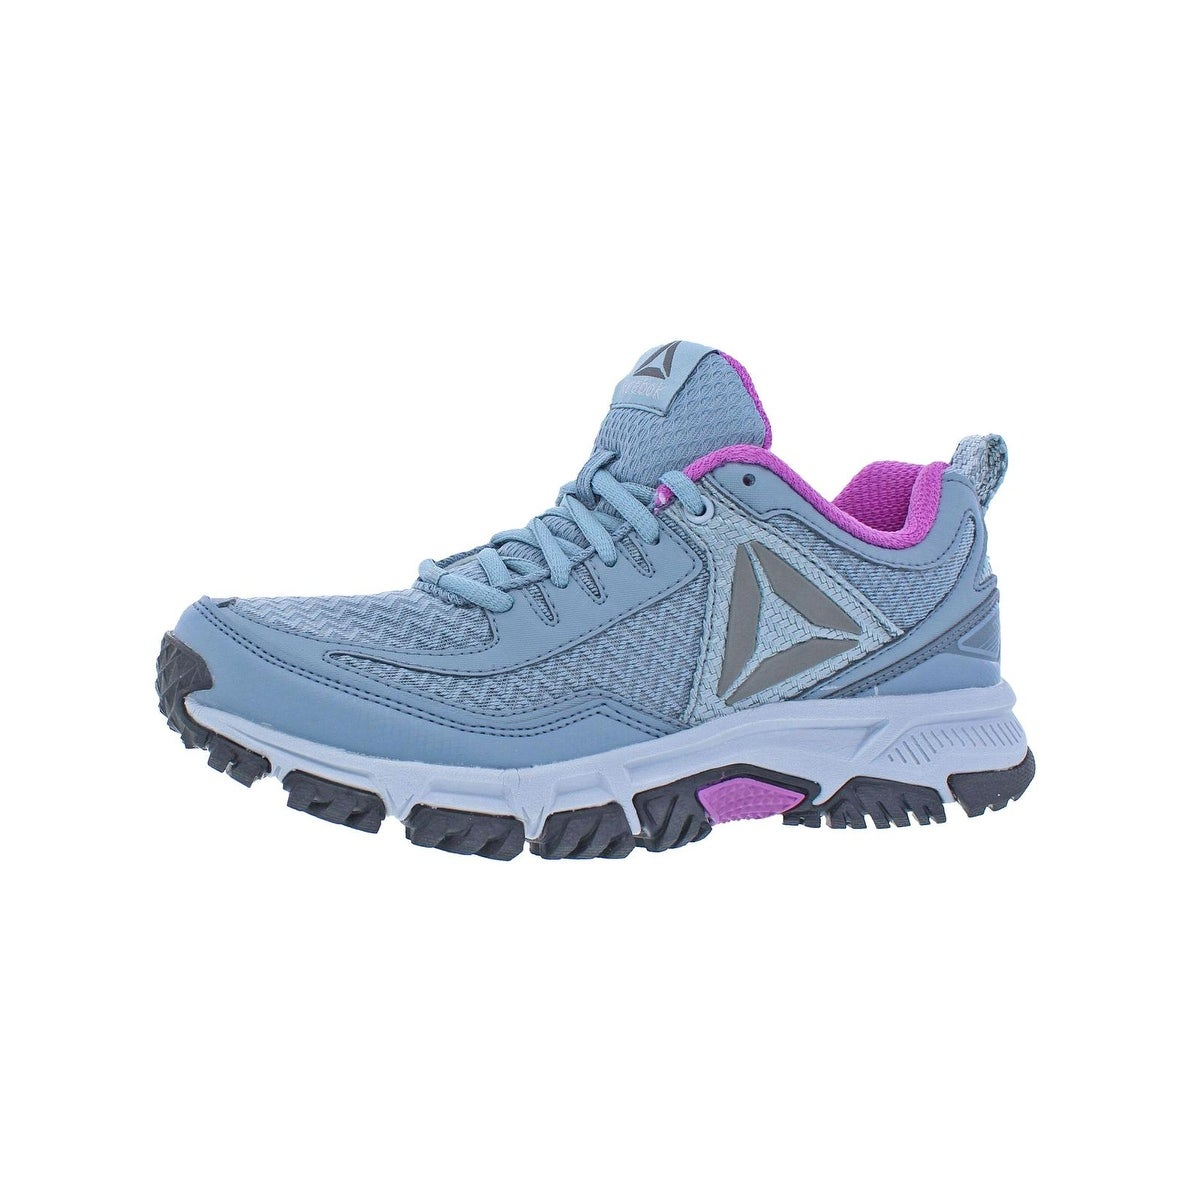 718d23dabd5 Shop Reebok Womens Ridgerider Trail 2.0 Trail Running Shoes EVA Trainer -  Free Shipping On Orders Over  45 - Overstock.com - 22681274